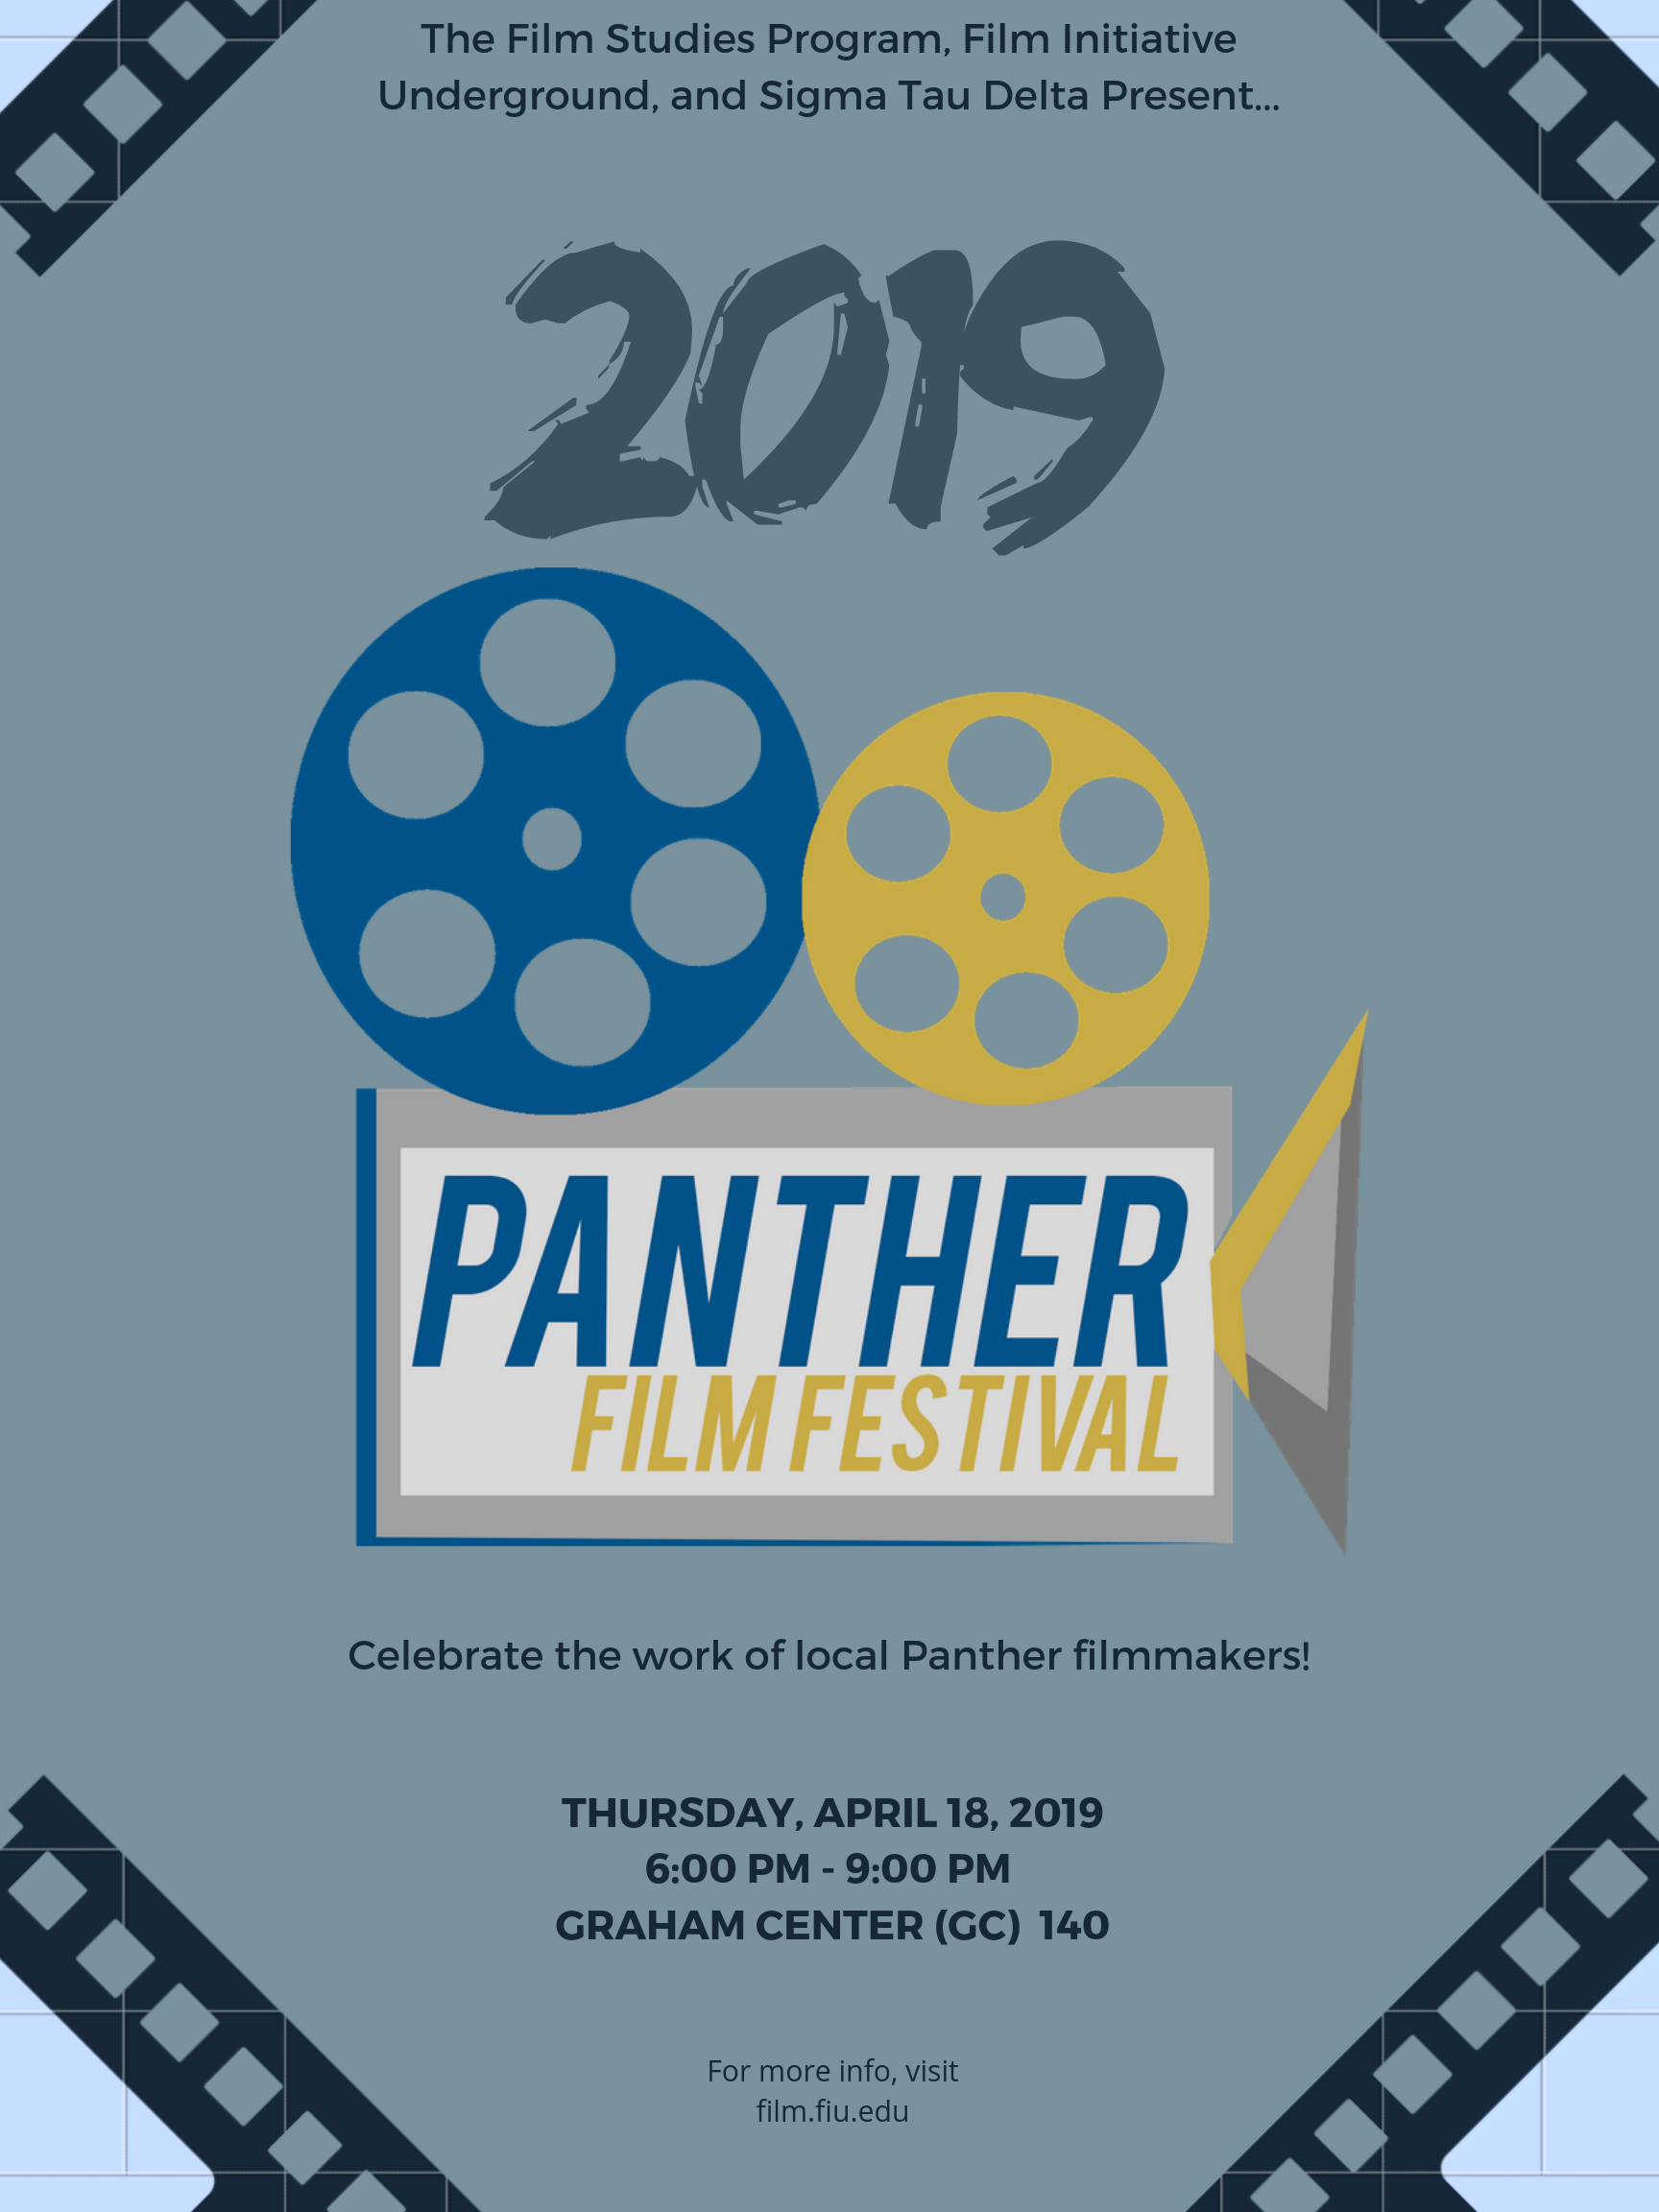 Panther Film Festival Thursday April 18, 2019 at 6 PM in GC 140